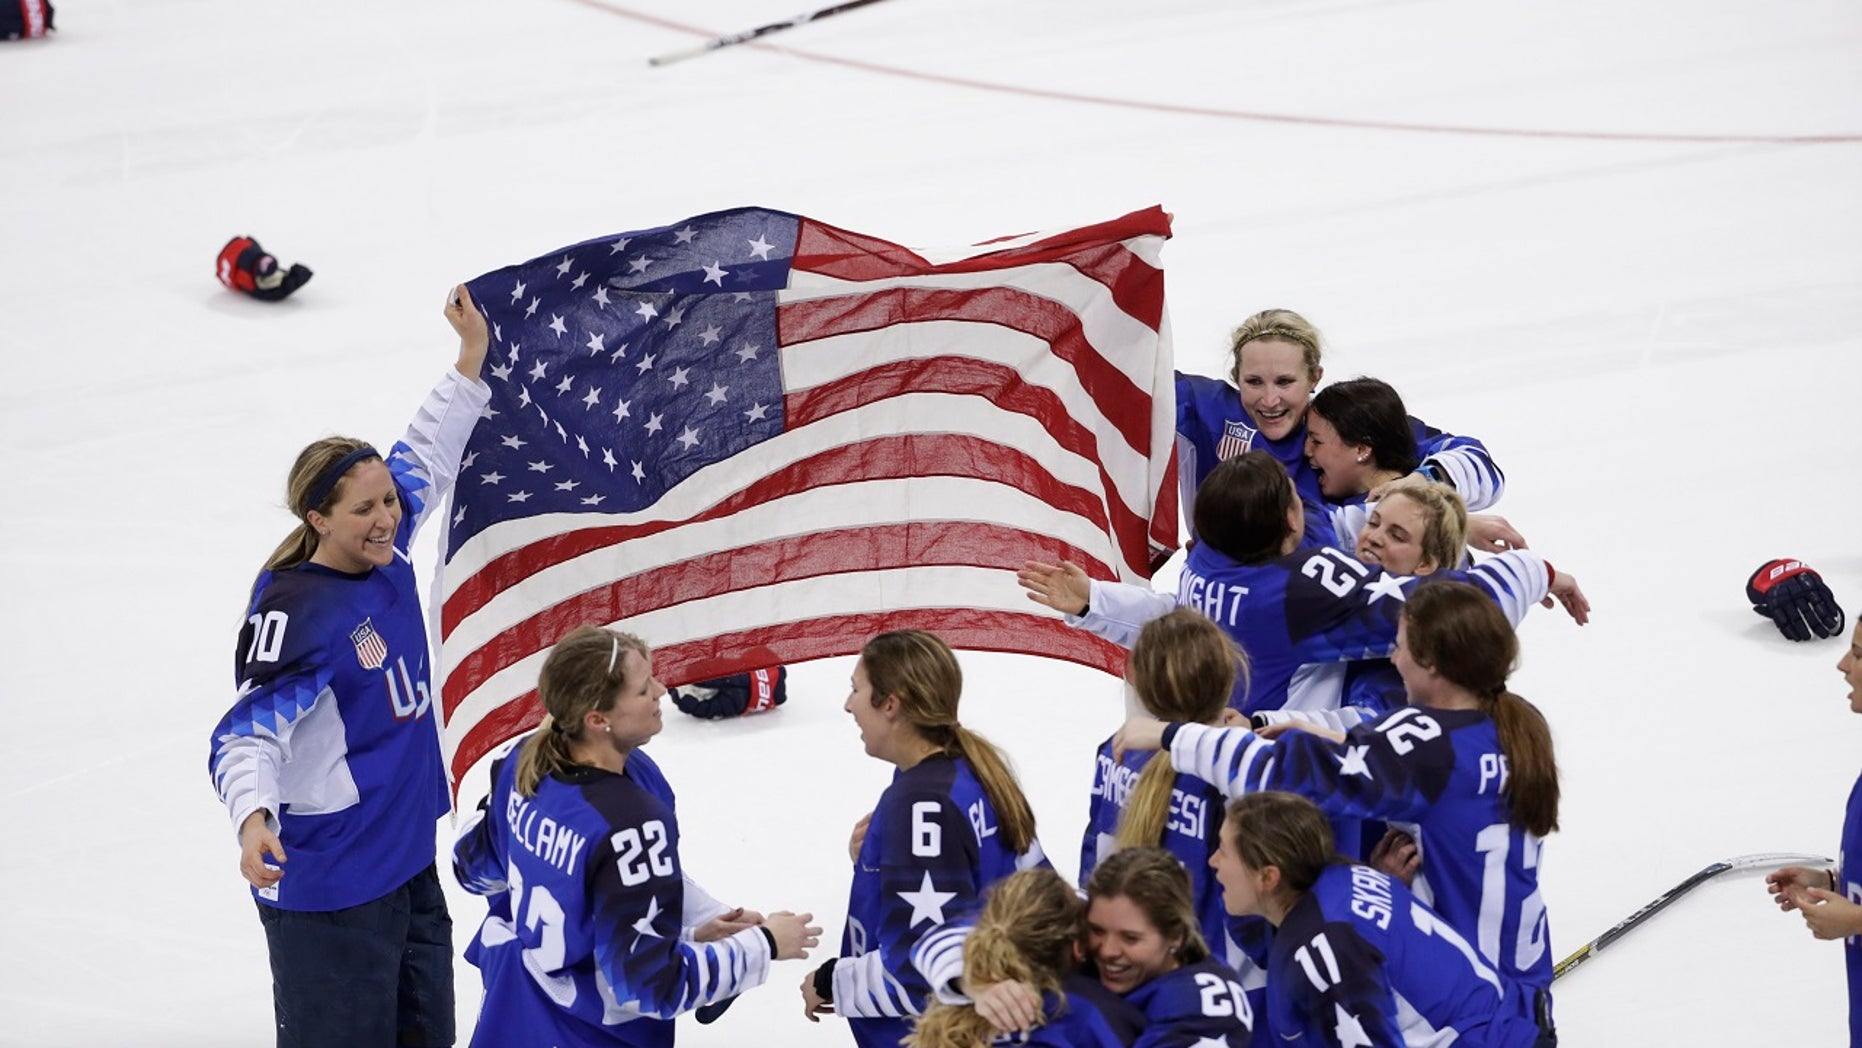 United States celebrates winning gold after the women's gold medal hockey game against Canada at the 2018 Winter Olympics in Gangneung, South Korea